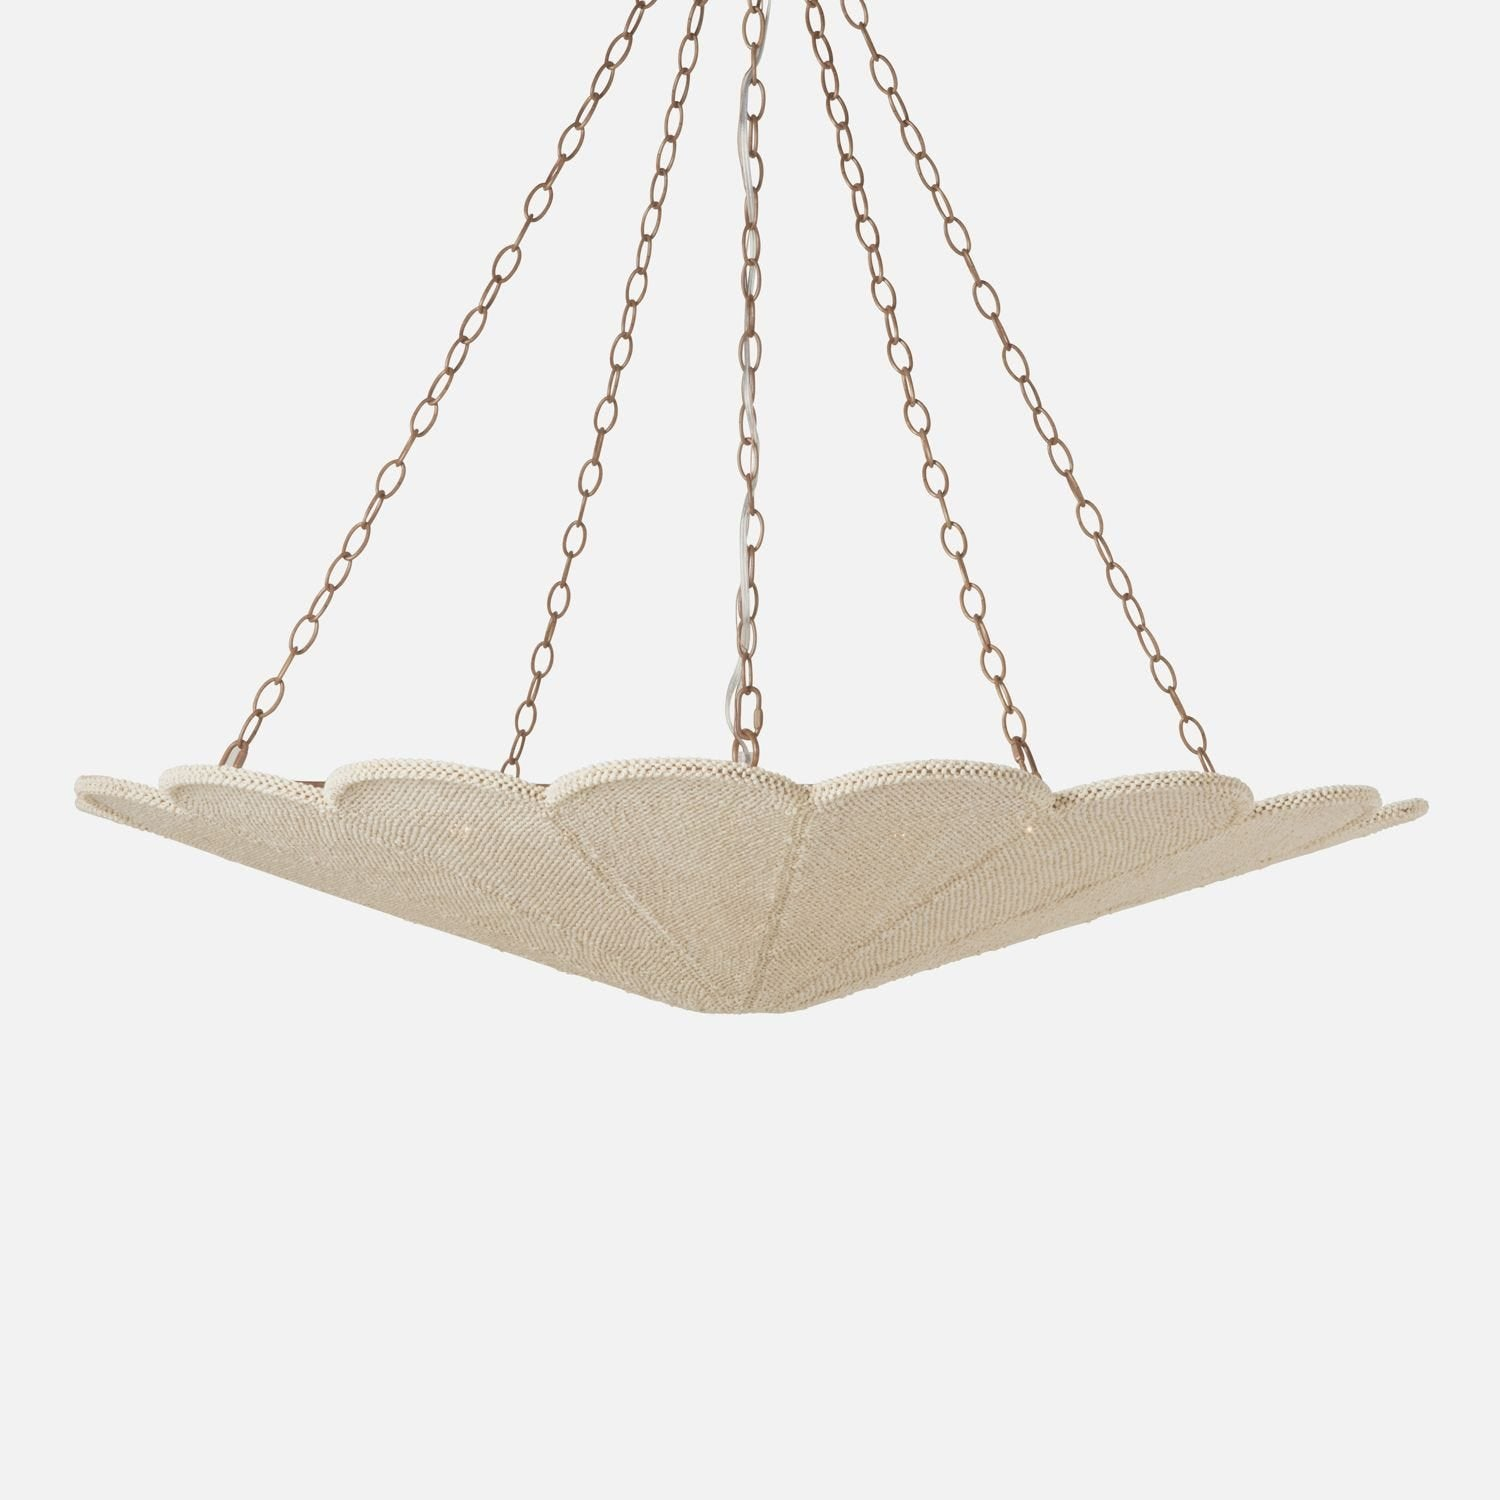 Glass Starburst Chandelier